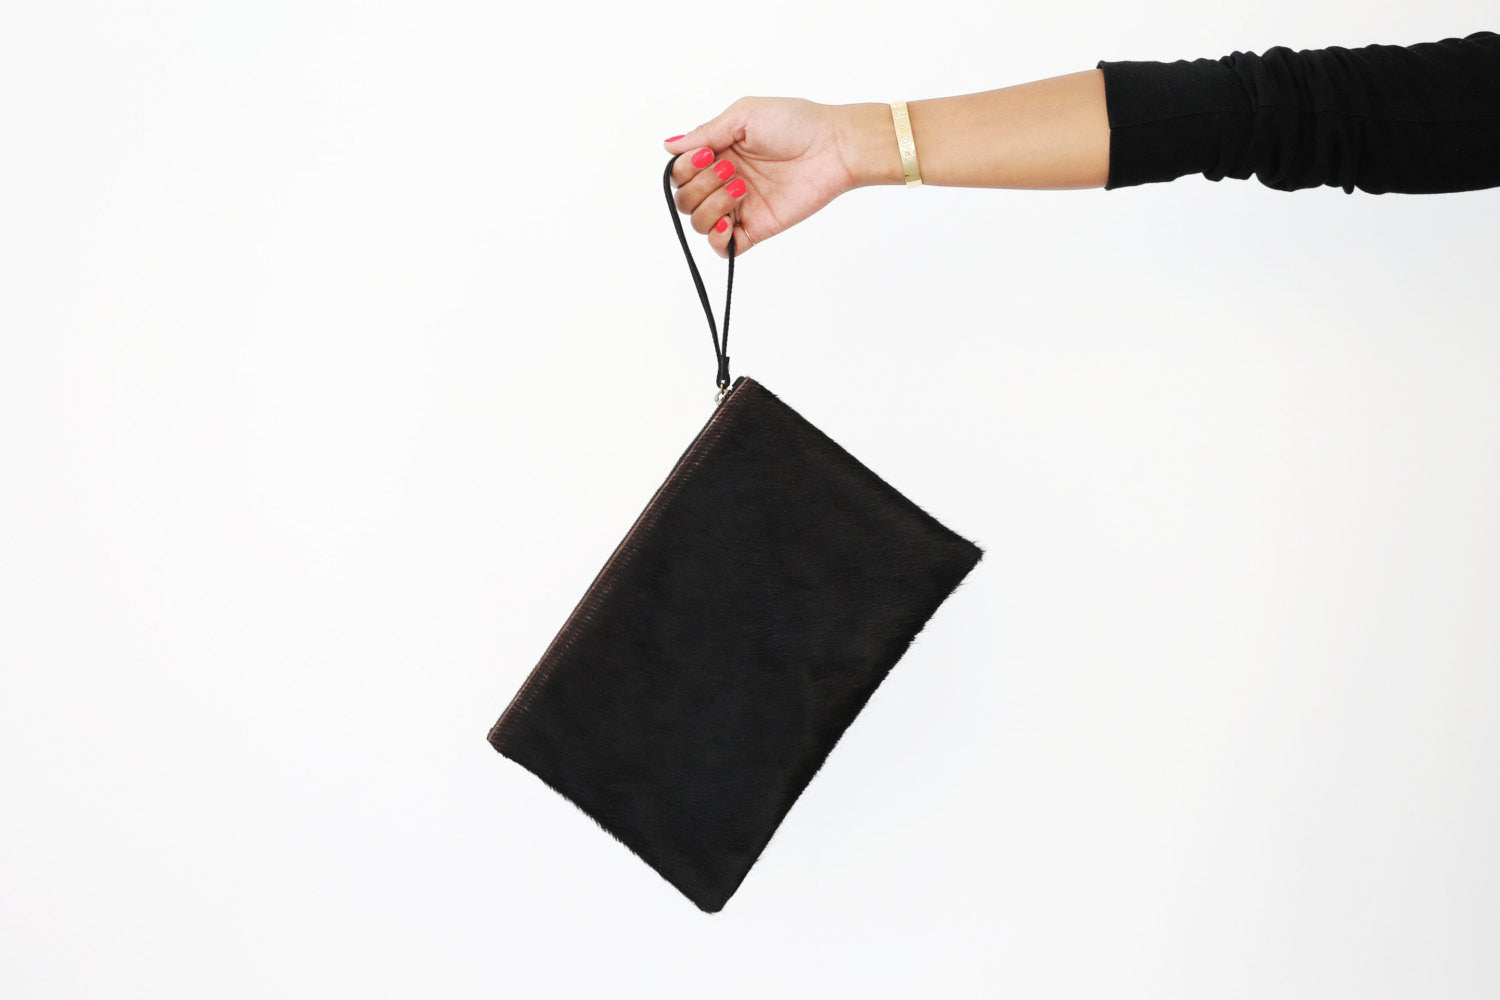 Clare V. Genuine Calf Hair Black Flat Clutch; Women's Handbag; Wristlet handbag; Wristlet purse; black wristlet; calf hair wristlet; black women's handbags; black clutch purse; black calf hair purse; black calf hair clutch